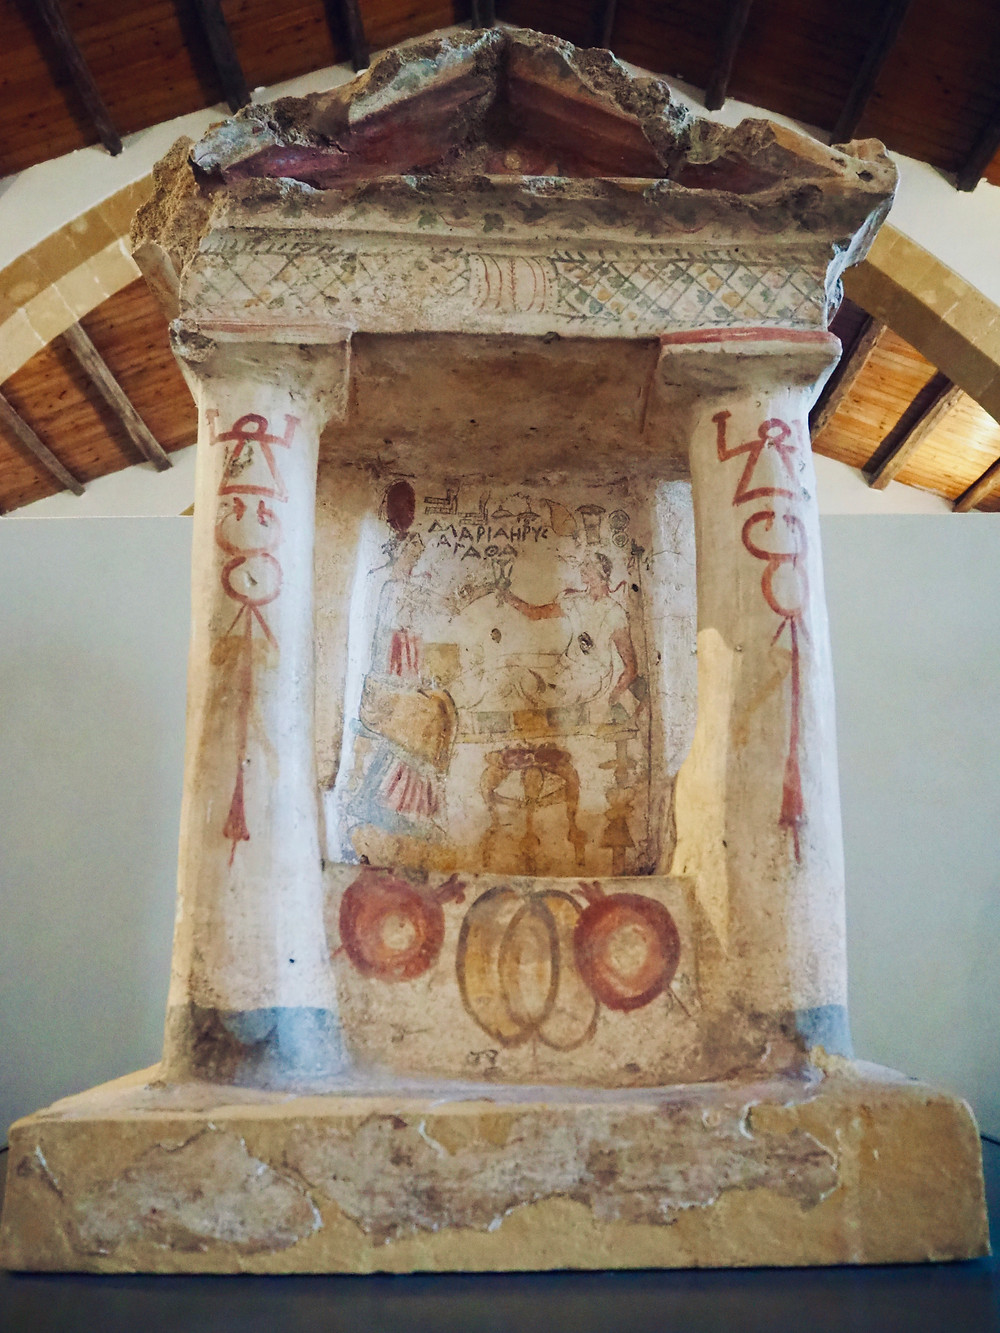 marsala-sicily-things-to-do-museum-3